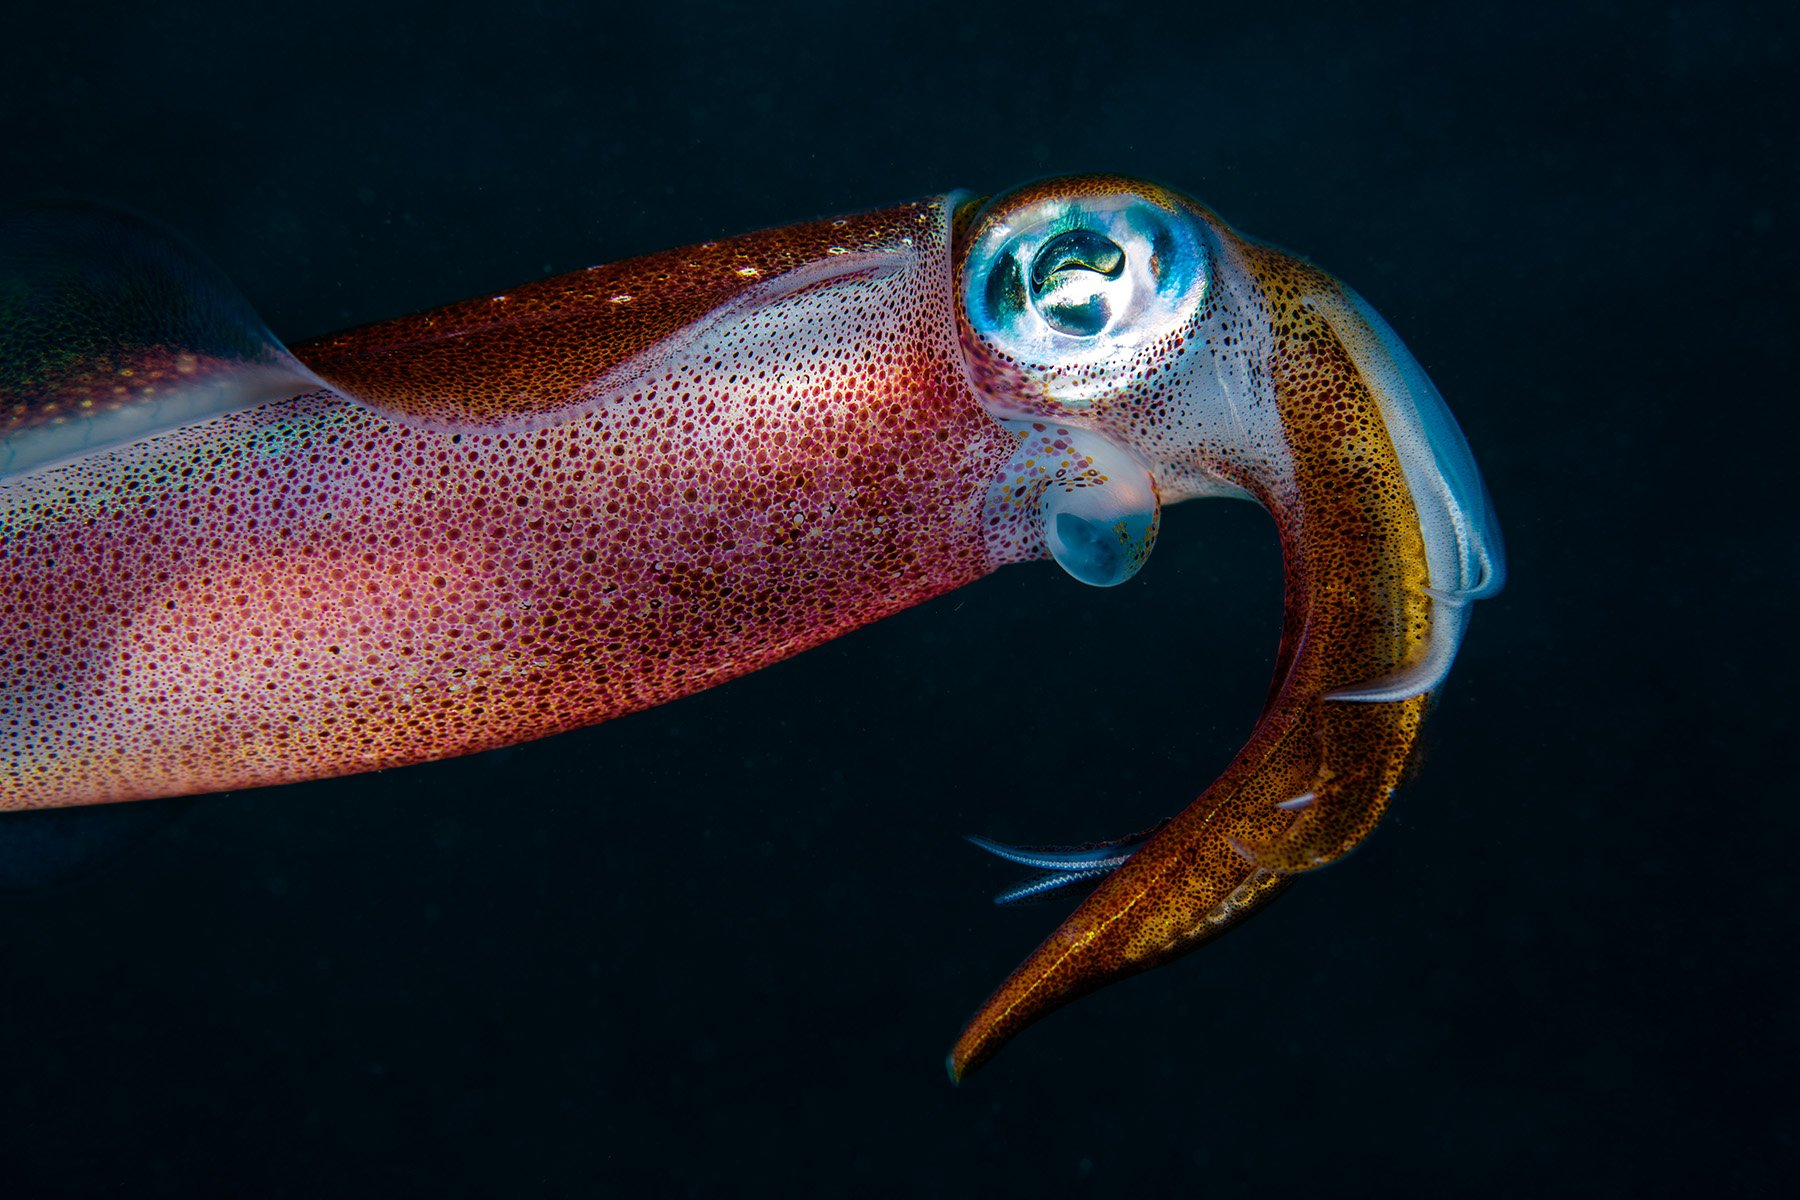 SQUID underwater ocean sea sealife